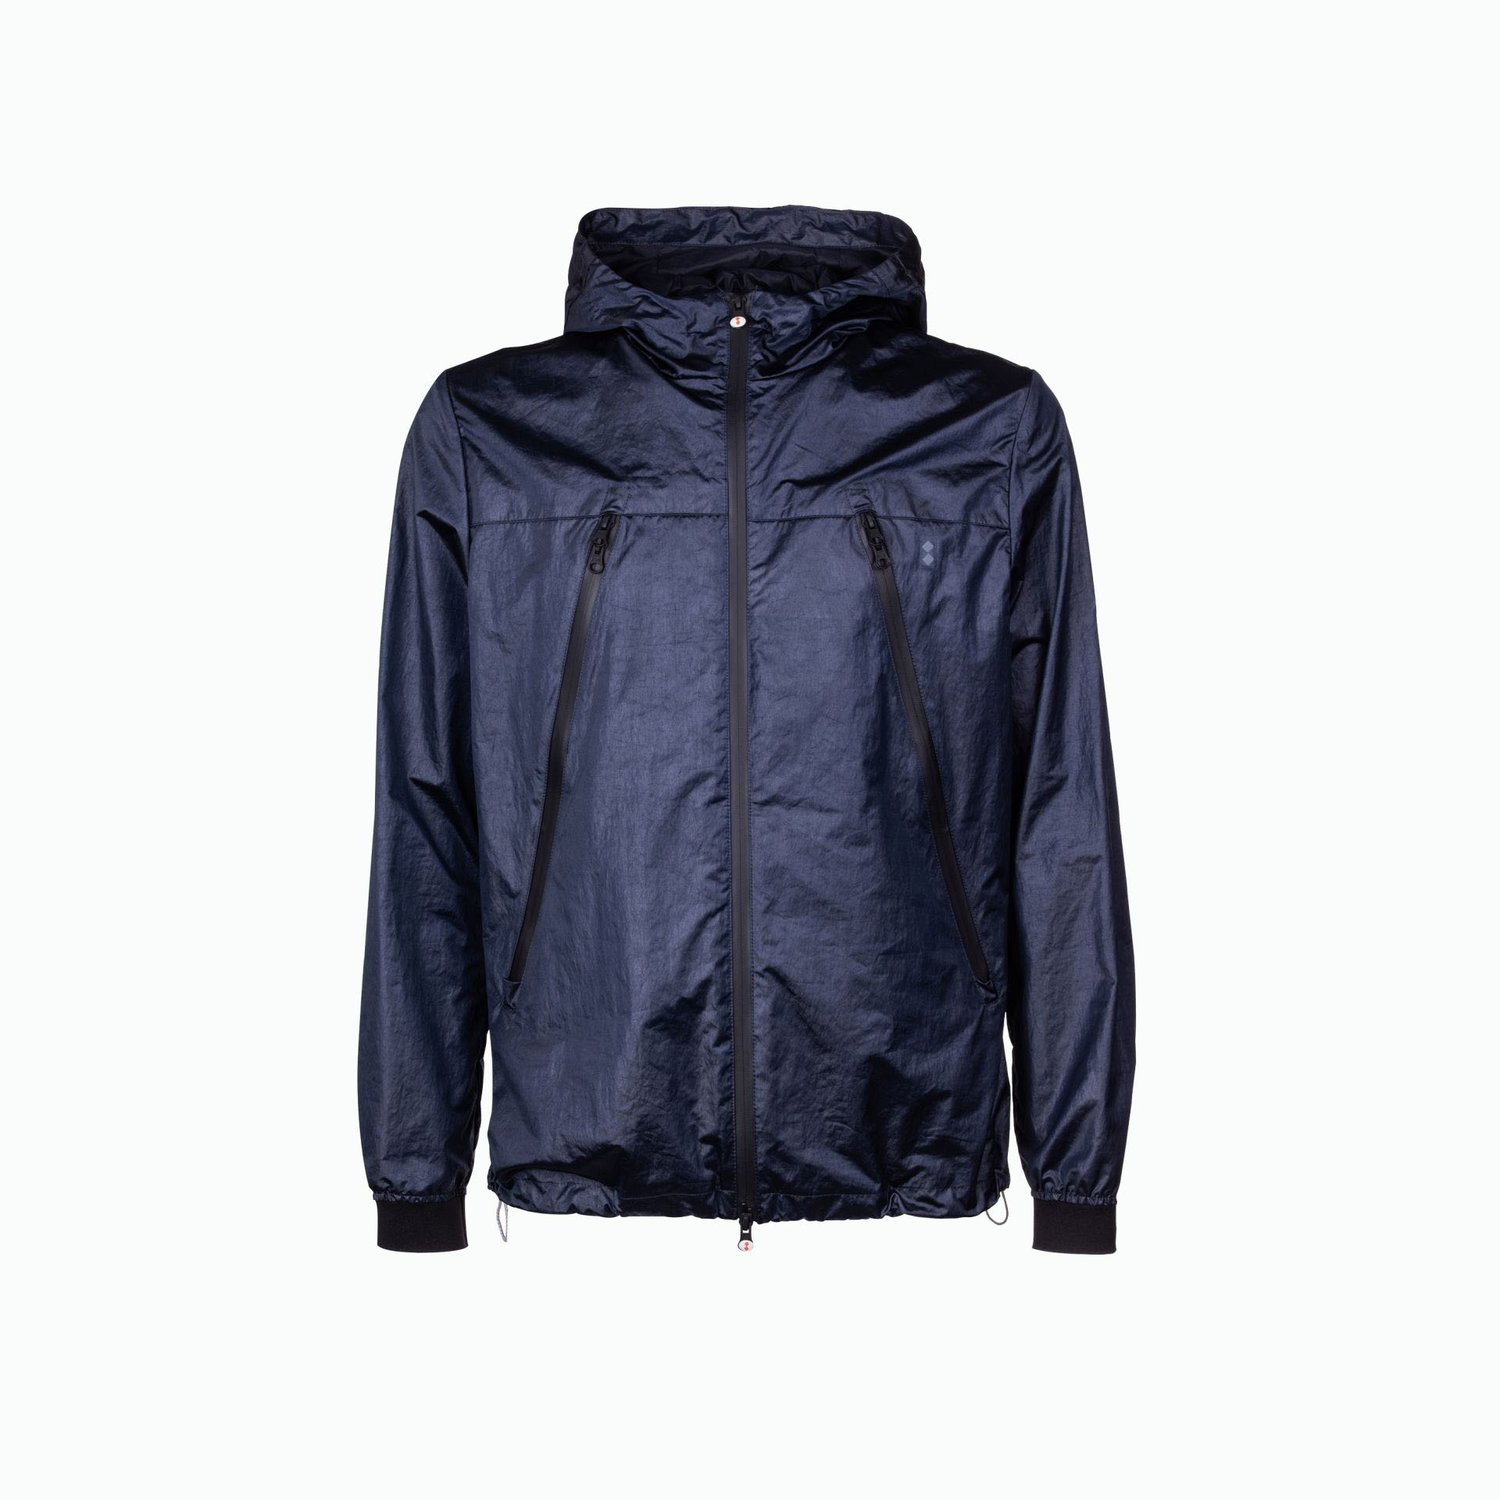 Compass Jacket - Navy Blau